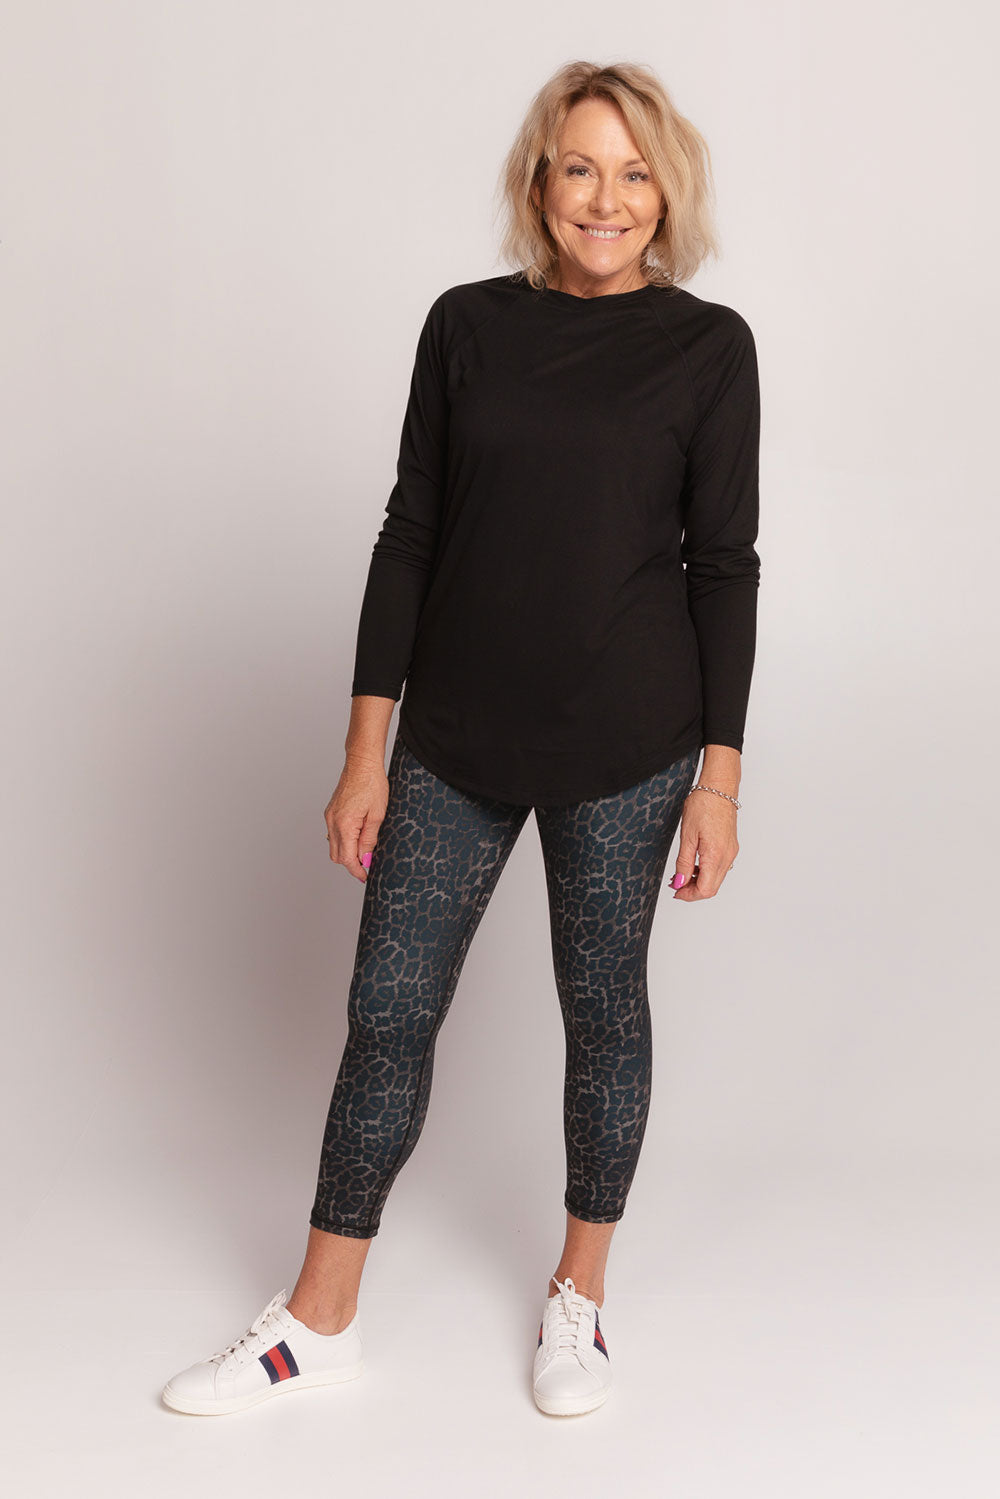 activewear-long-sleeve-performance-top-black-medium-front